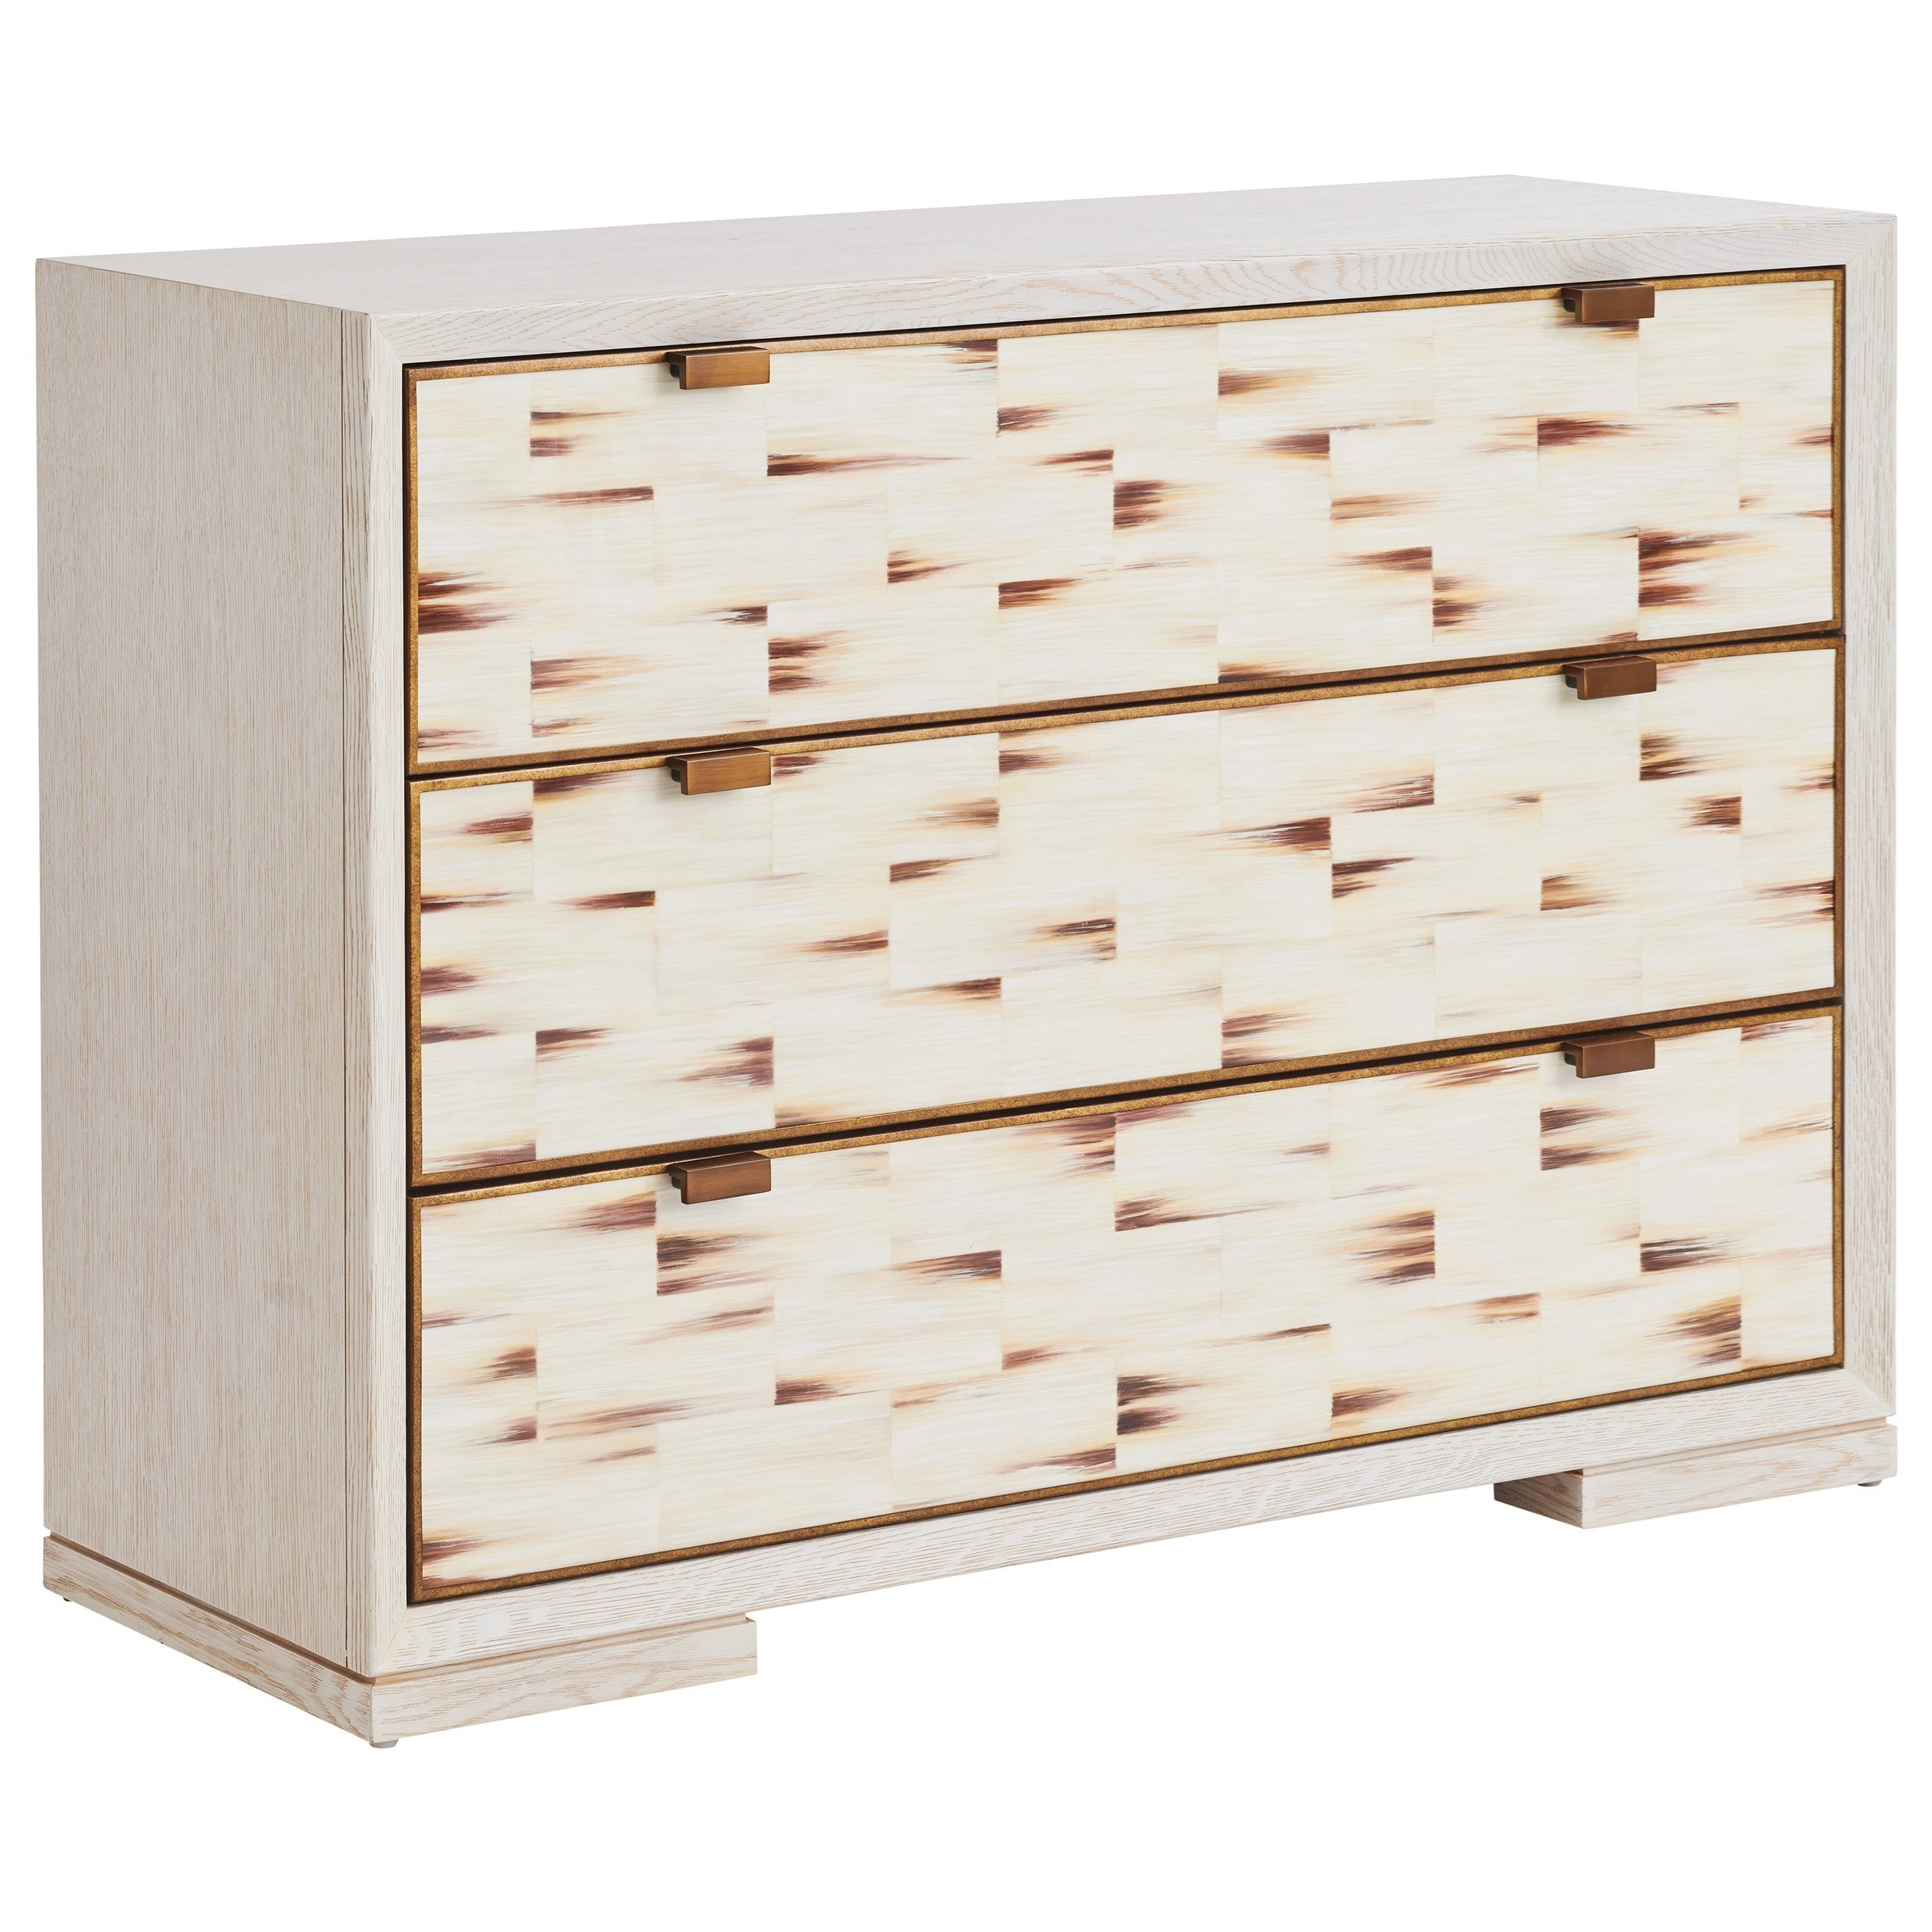 Carmel Dry Creek Hall Chest by Barclay Butera at Baer's Furniture